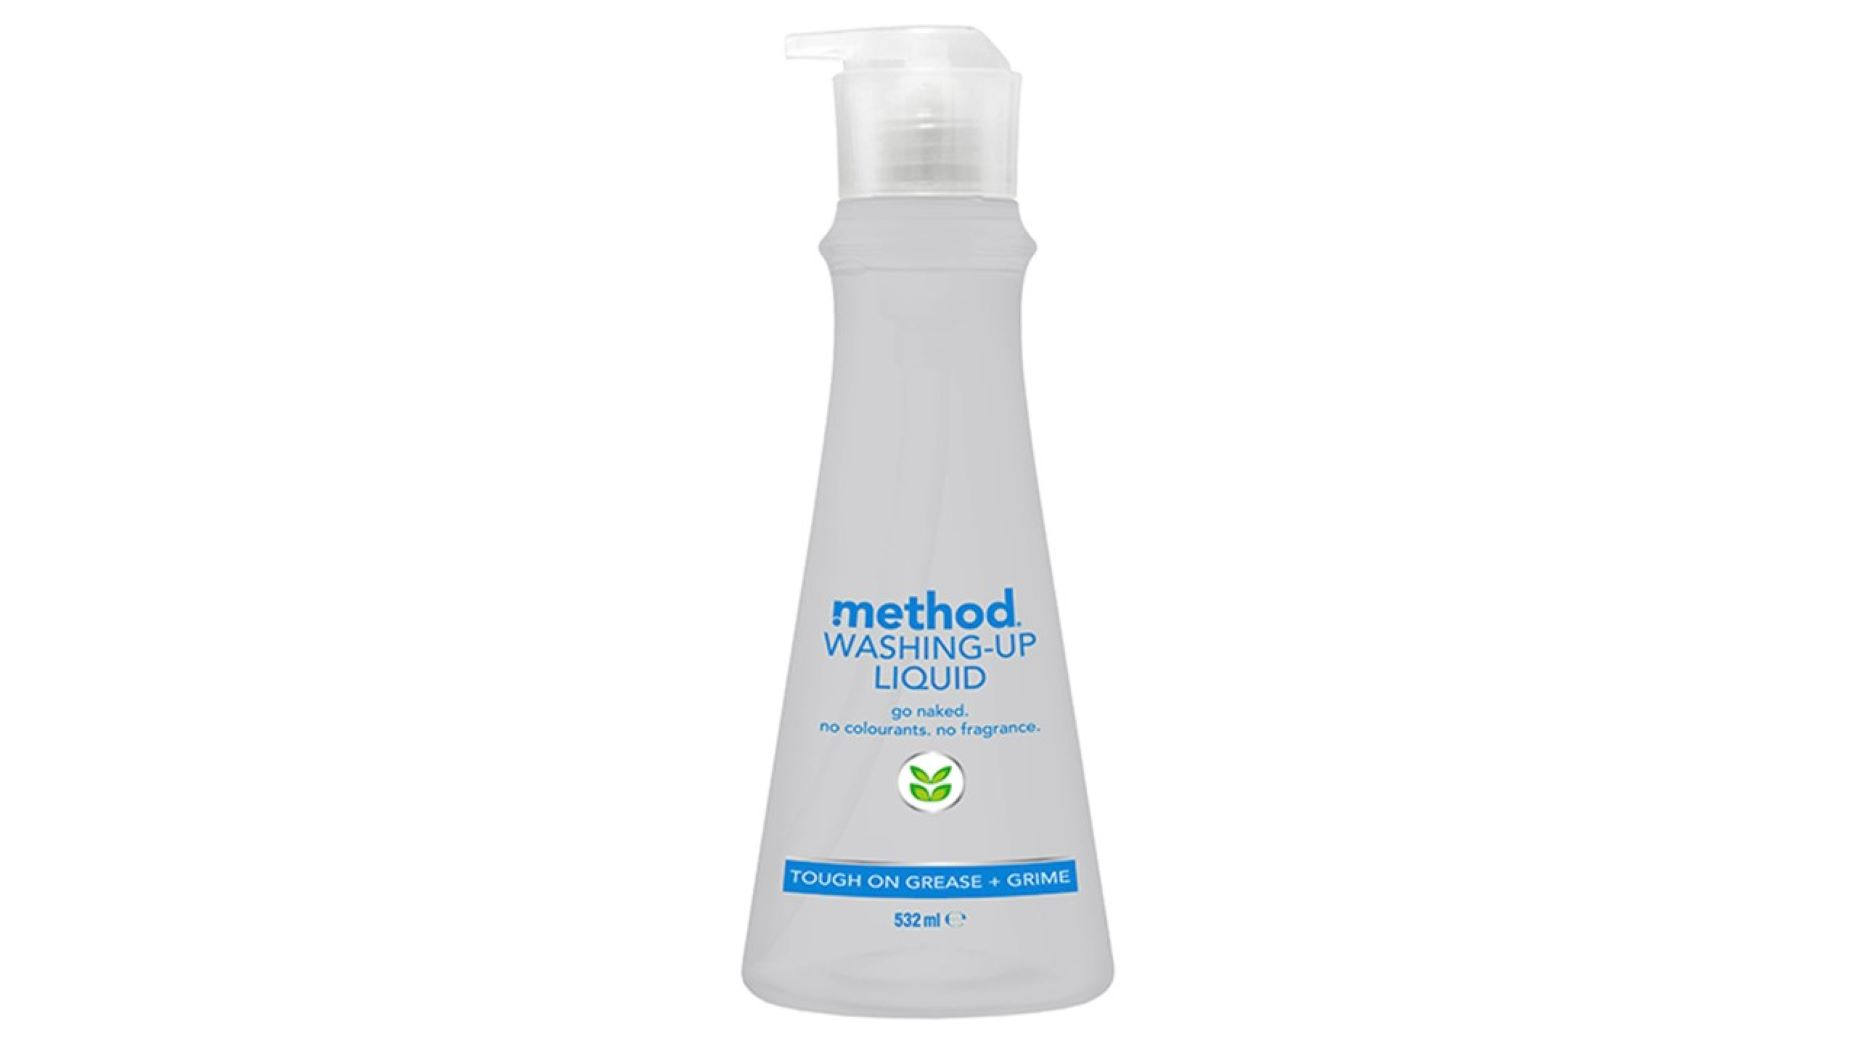 method Astianpesuaine Naked 532ml